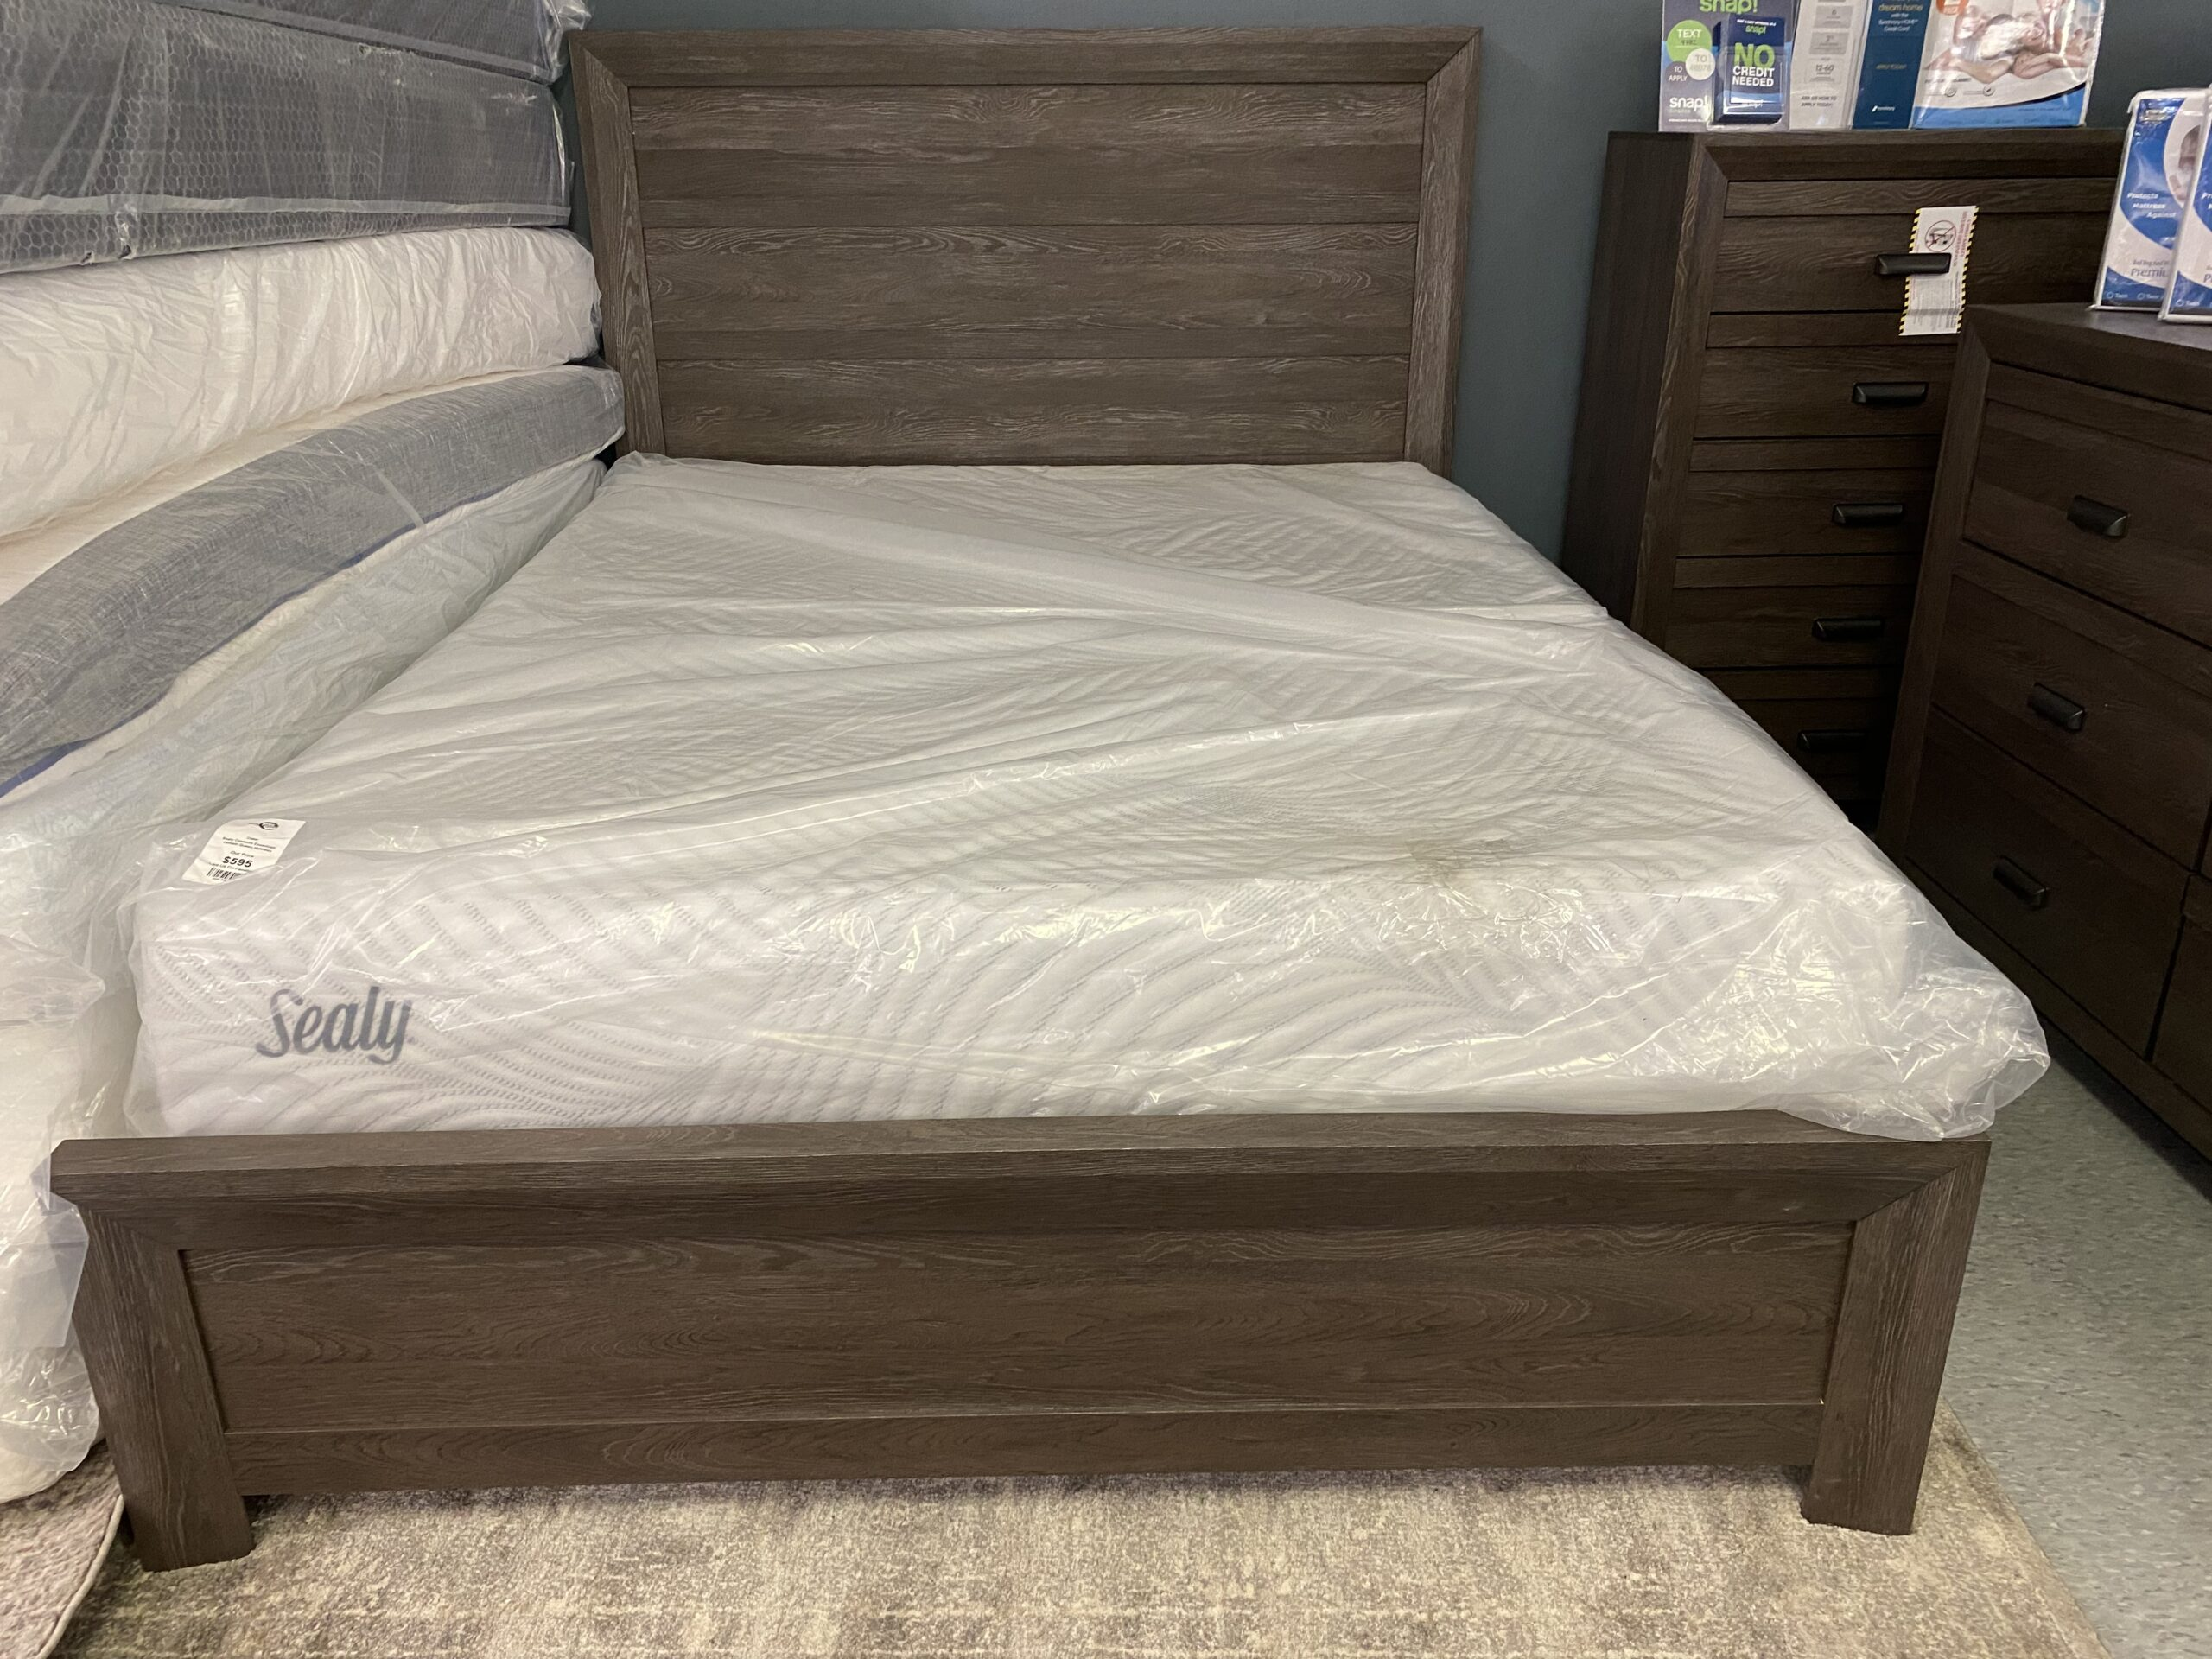 B-6700 King Bed Frame